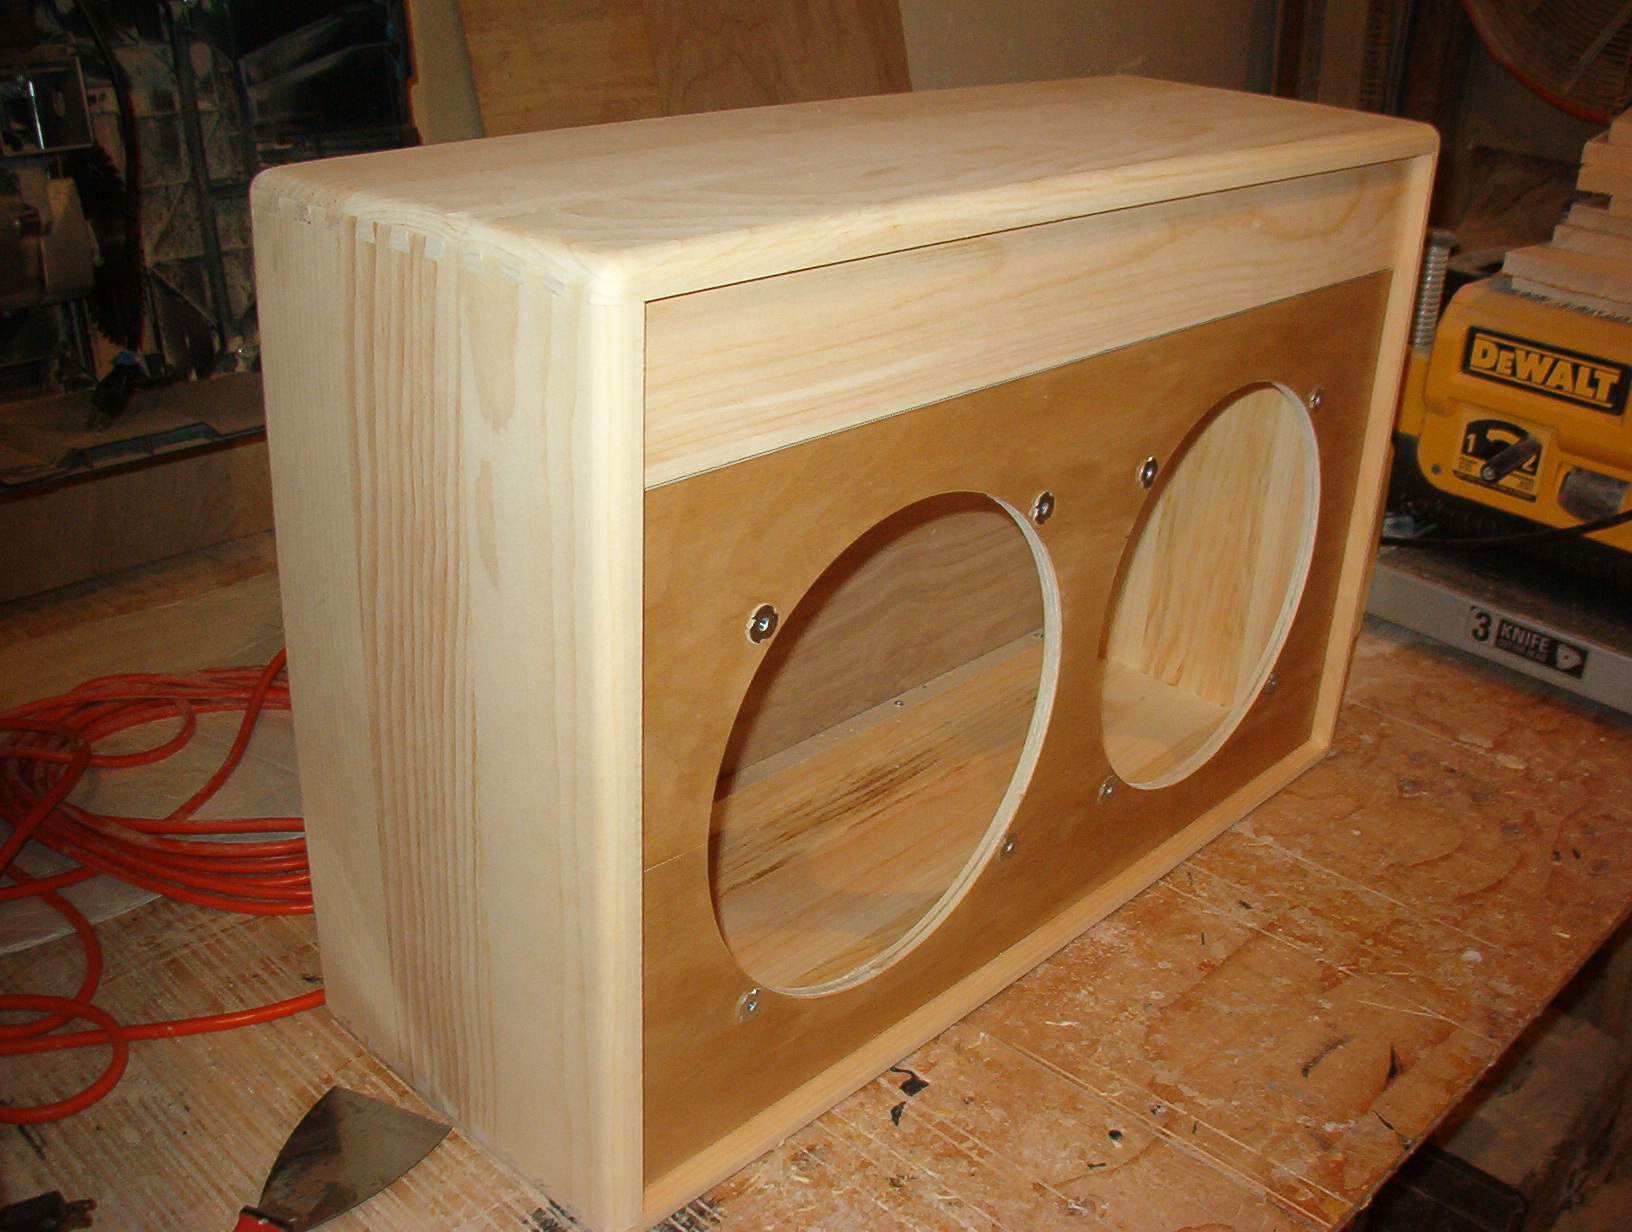 Vintage Style Cabs Wiring 1x12 Guitar Cabinet Prewired With 14 Gauge Wire And 1 4 Switchcraft Jack Available In 2x12 2x10 1x10 1x15 Fromat These Have 2 Birch Plywood Baffles Are